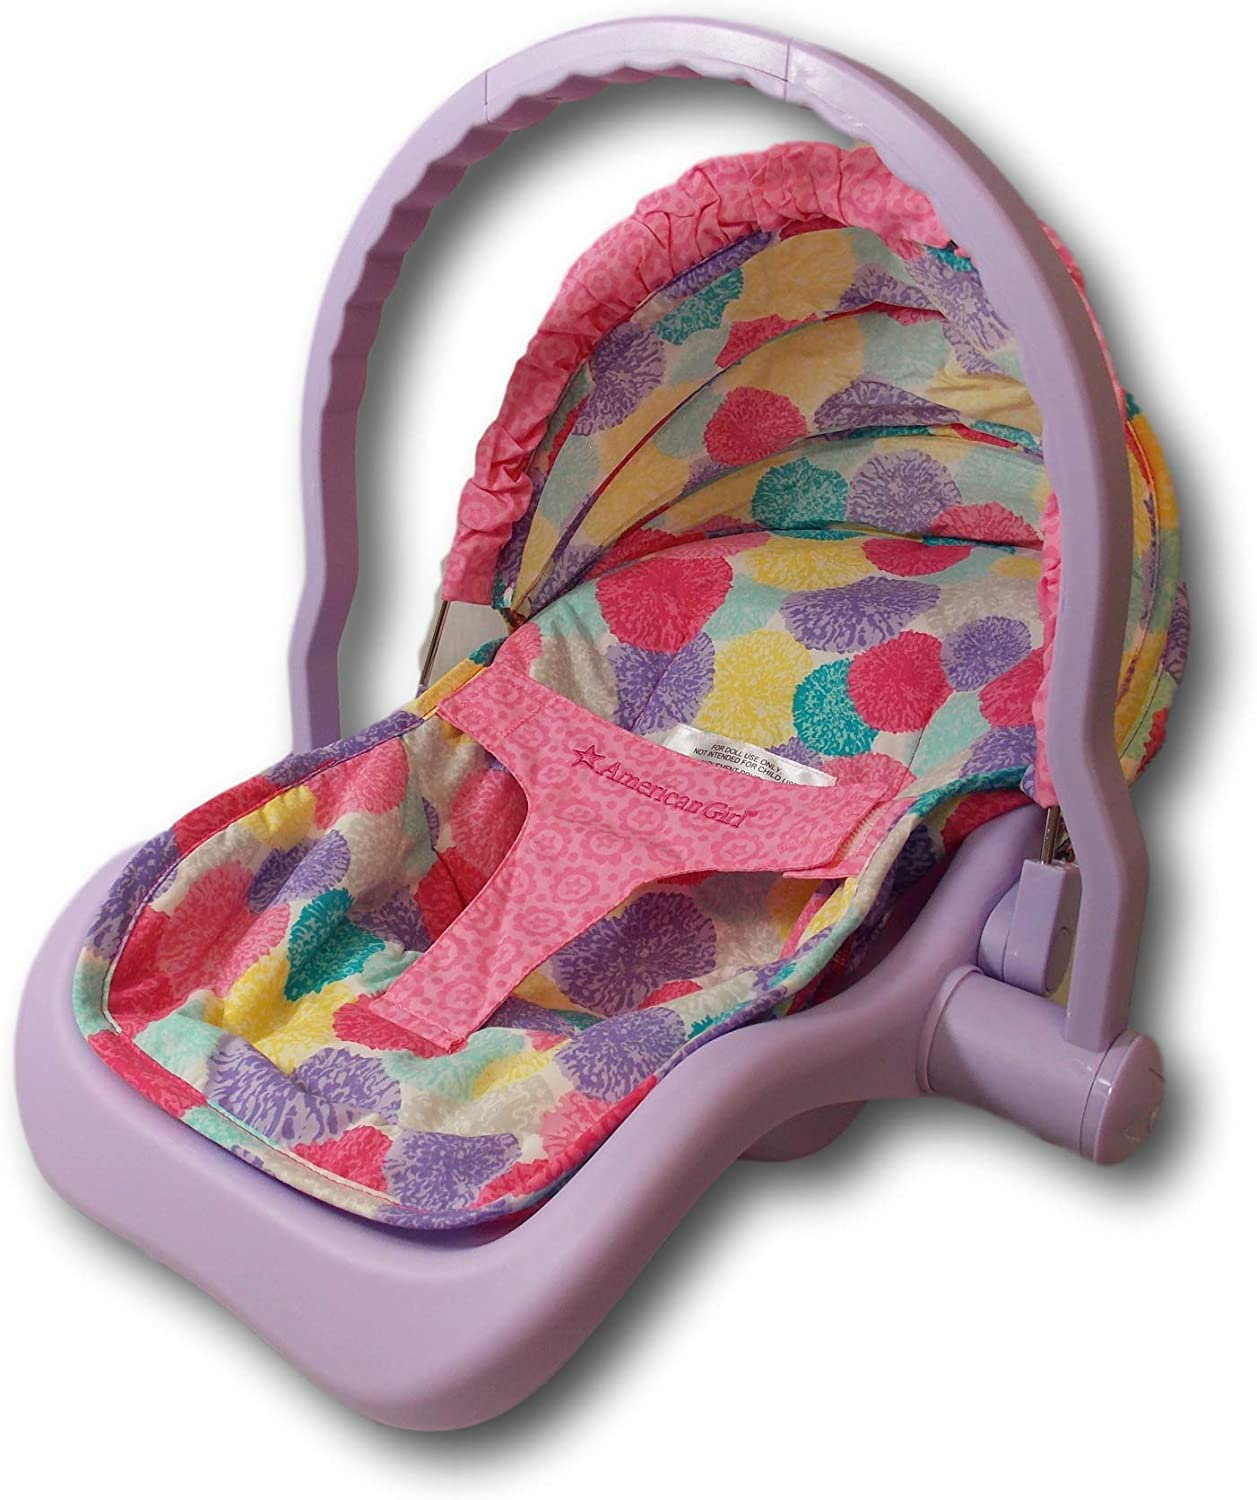 American Girl Bitty Baby Travel Seat for 15 Dolls